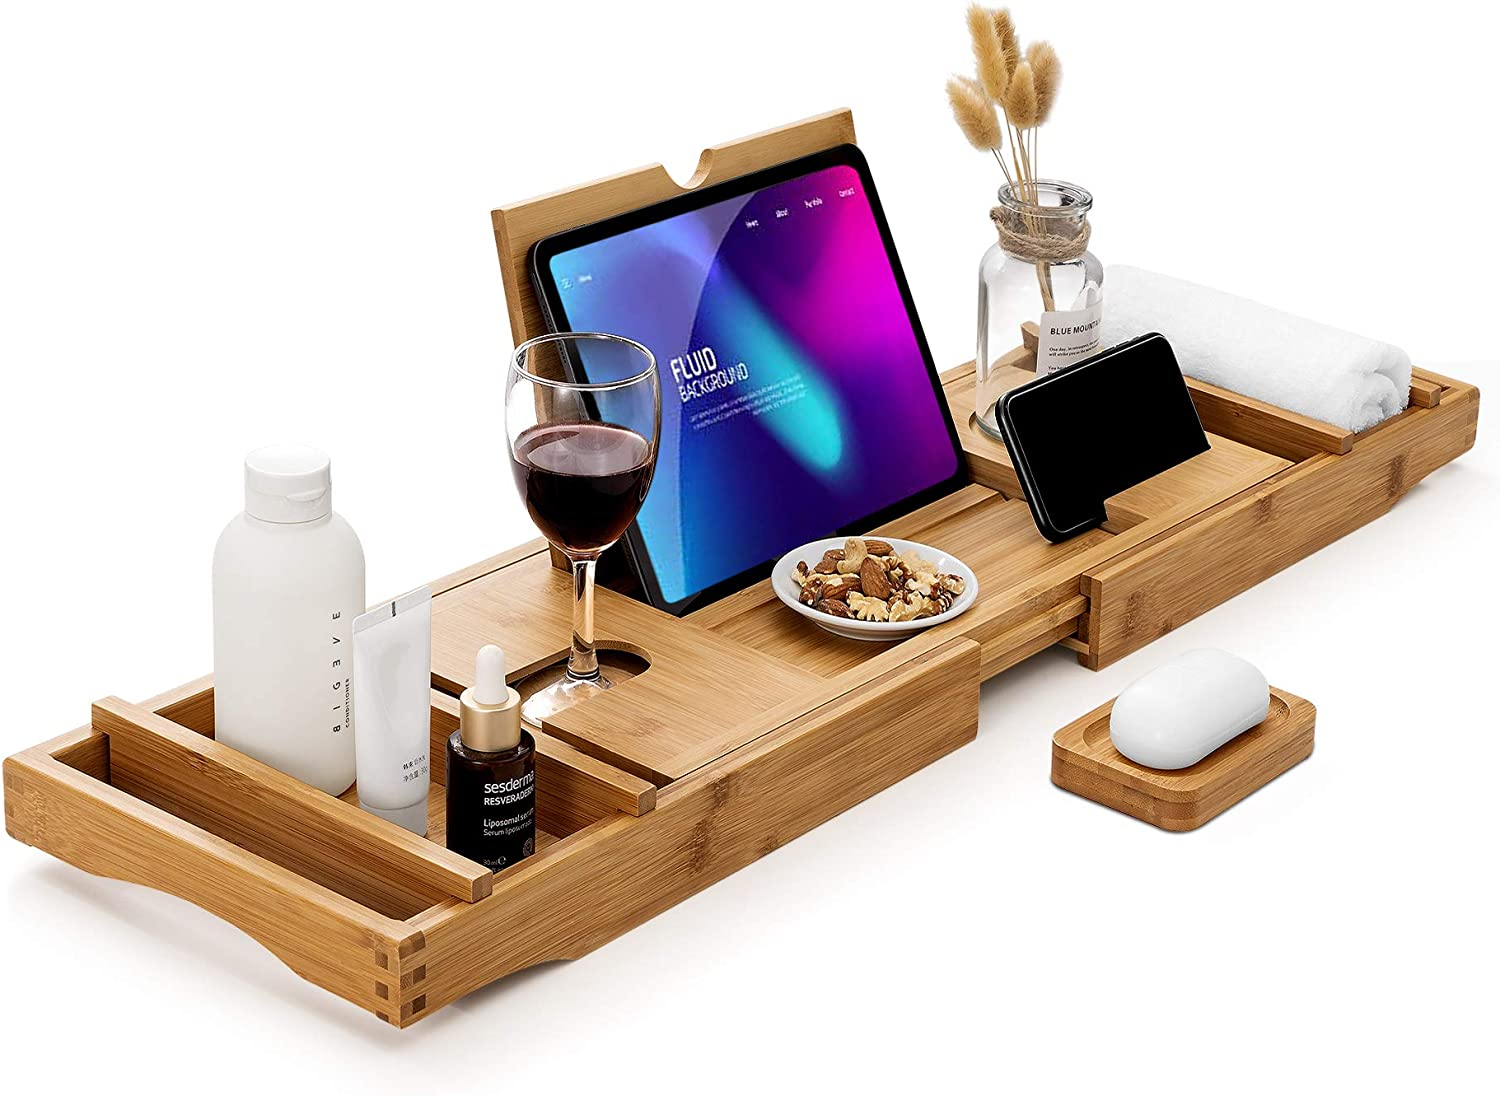 HBlife Bamboo Bathtub Caddy Tray [Durable, Non-Slip], One or Two Person Bath and Bed Tray, Extending Sides Fits Any Tub, Cellphone iPad and Wineglass Holder, Free Soap Holder -Natural Color: Home & Kitchen